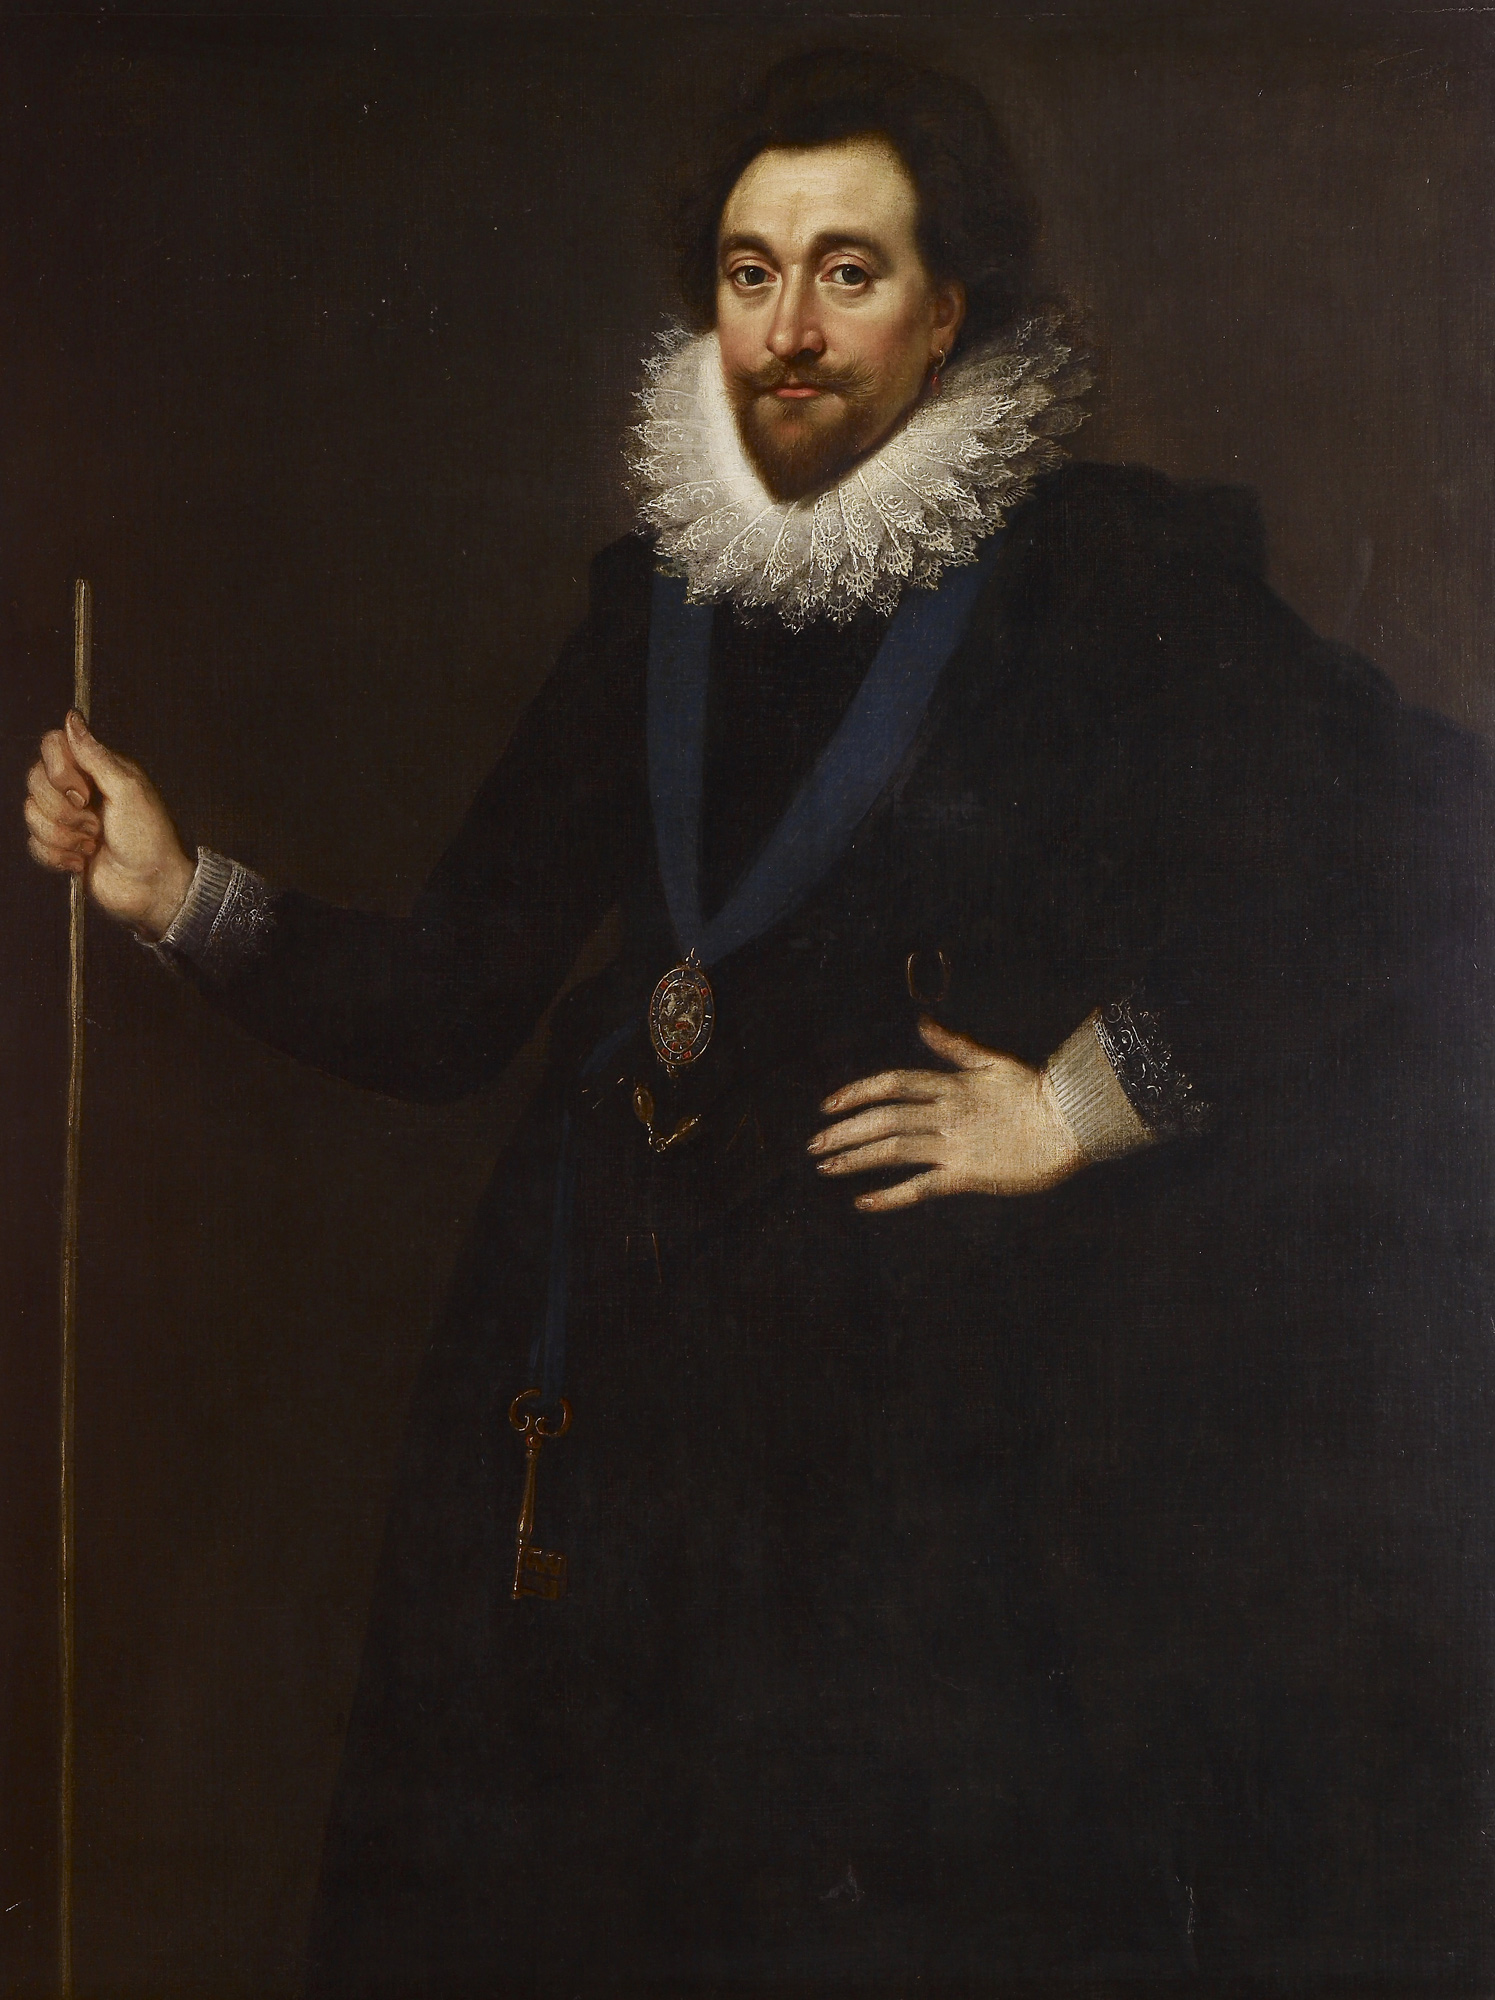 Portrait of William Herbert, 3rd Earl of Pembroke